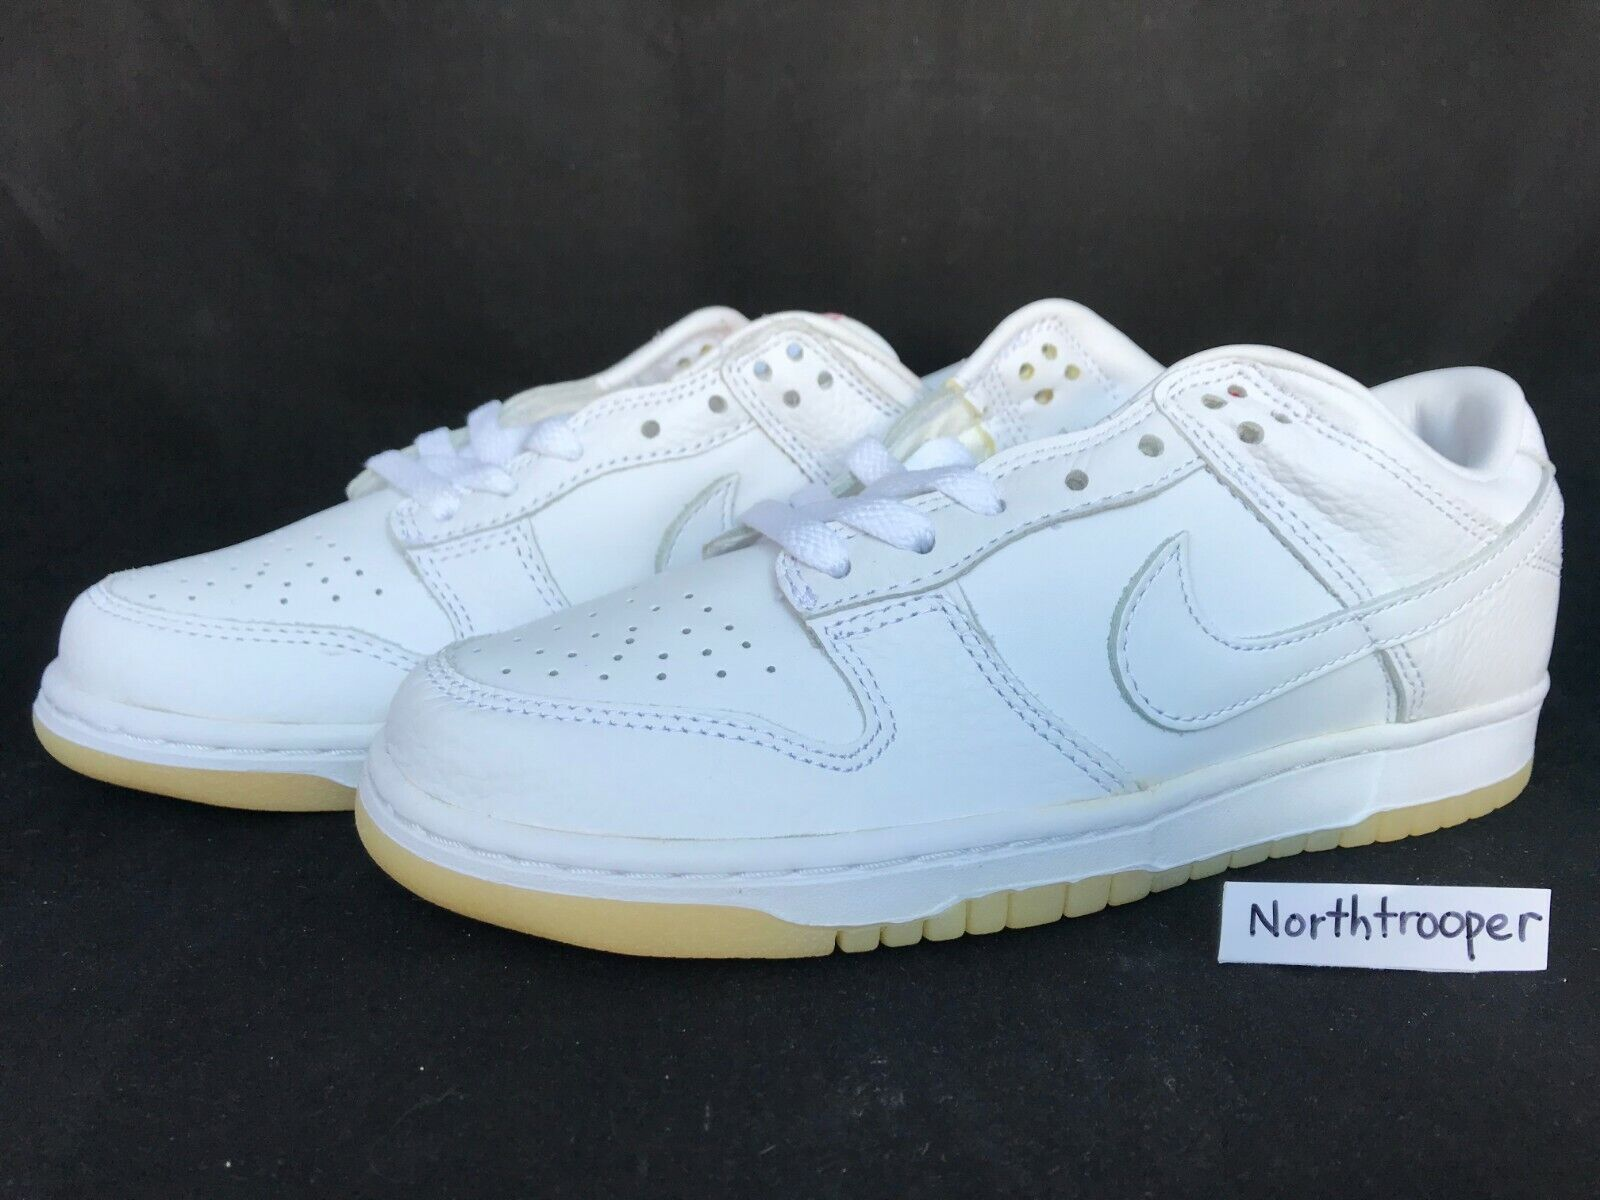 new style 71e8a 8c750 Athletic Shoes Clothing, Shoes   Accessories Nike Dunk high QS Be True To Your  School Kentucky Blue ...